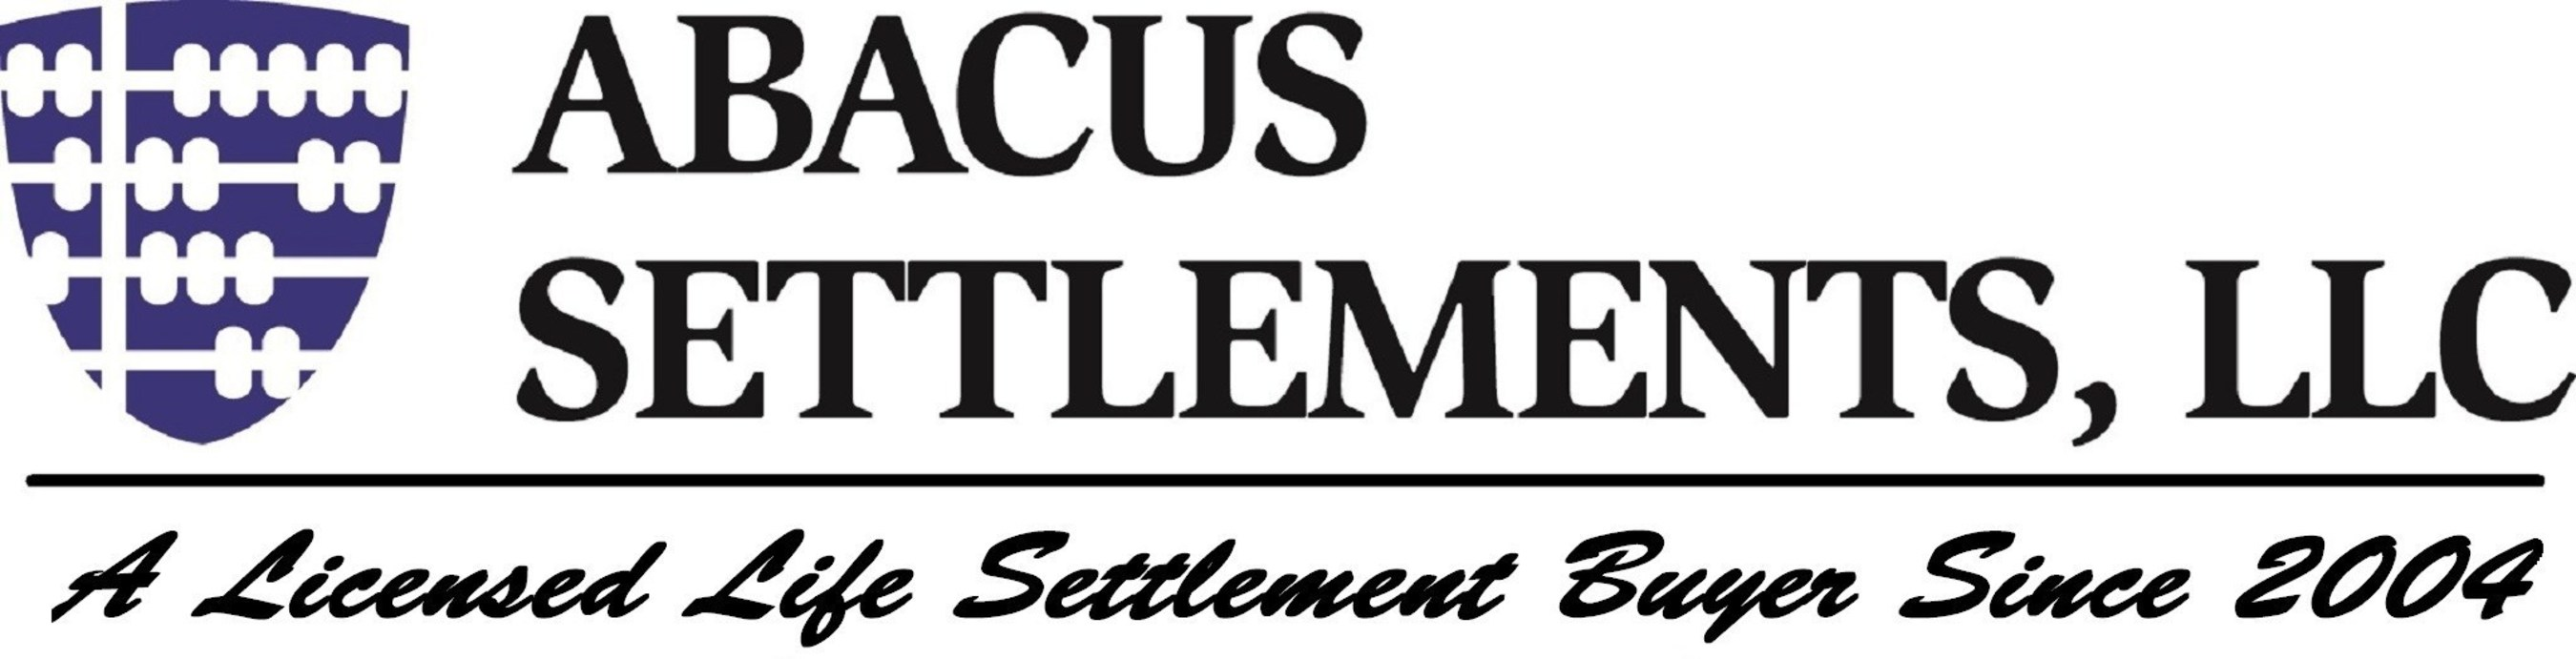 Abacus Life Settlements is a licensed life settlement buyer since 2004. Originally formed in New York's ...